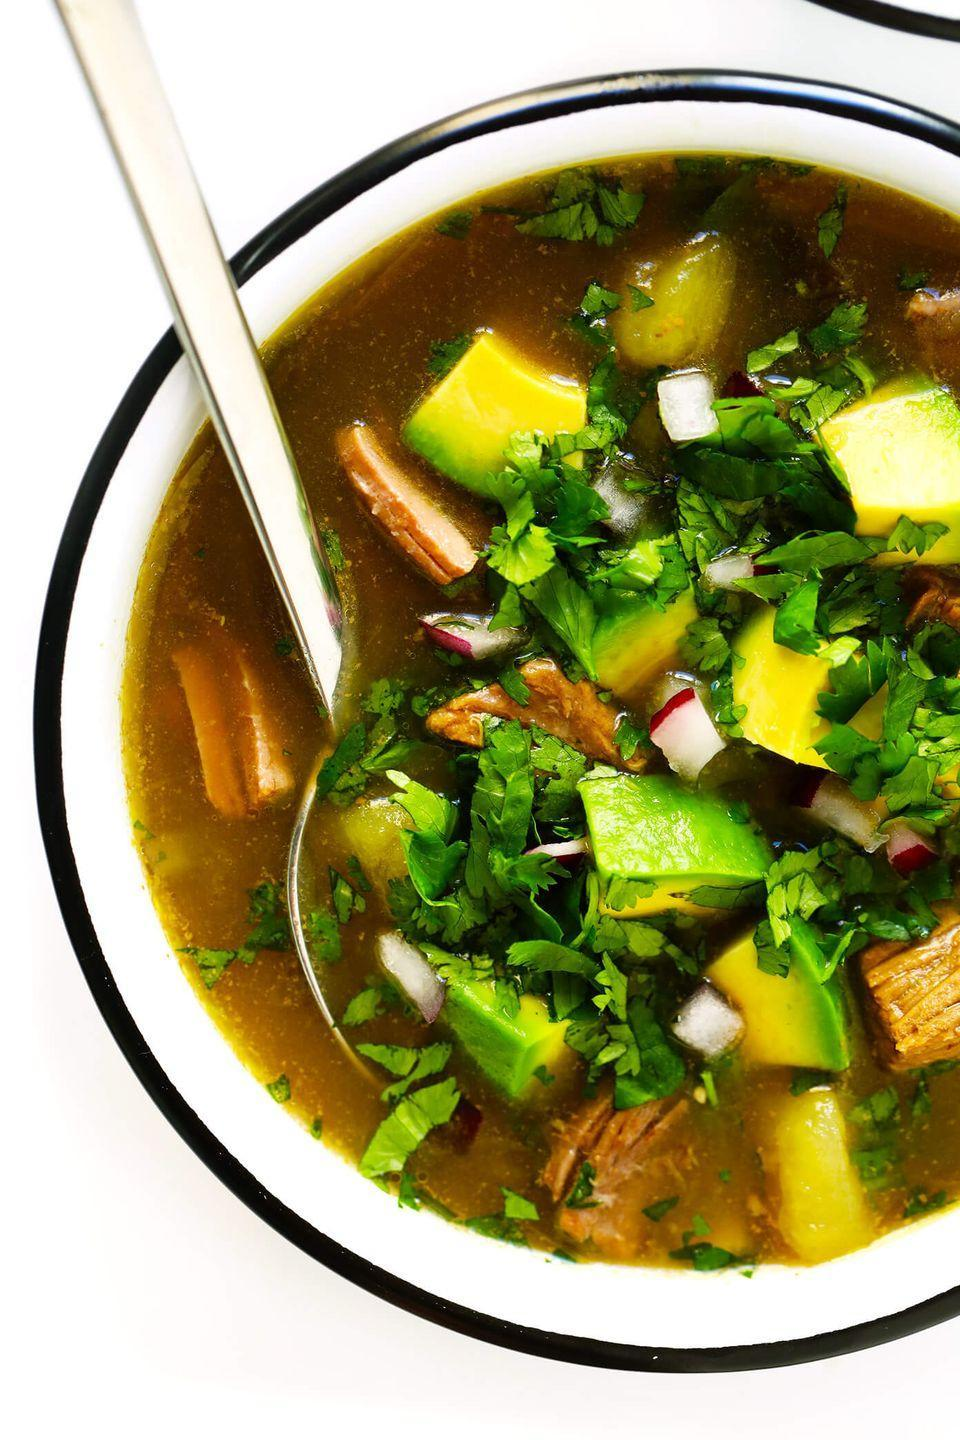 """<p>Soup is a great weight loss meal, and when you pair it with filling protein from steak, it'll be even more satiating until morning. This soup by<a href=""""https://www.gimmesomeoven.com/salsa-verde-steak-soup/"""" rel=""""nofollow noopener"""" target=""""_blank"""" data-ylk=""""slk:Gimme Some Oven"""" class=""""link rapid-noclick-resp""""> Gimme Some Oven</a> is packed with spicy flavors like poblano, garlic, and onion to fire the metabolism. (Though if you want it milder, add in extra stock or water to thin it out.)</p>"""